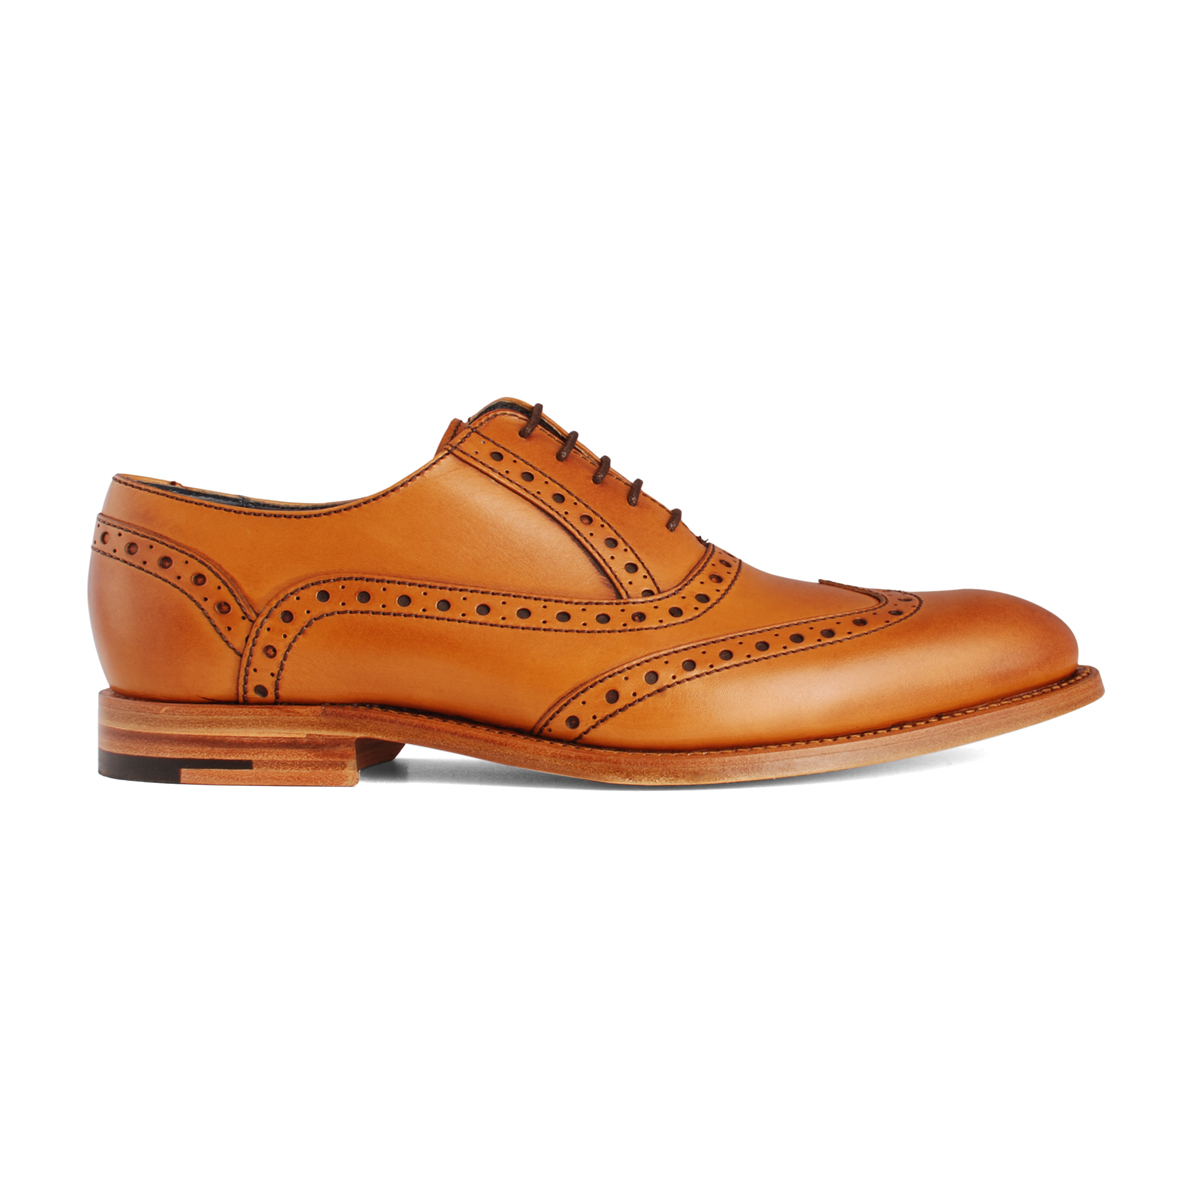 Barker Grant Cedar Calf shoes